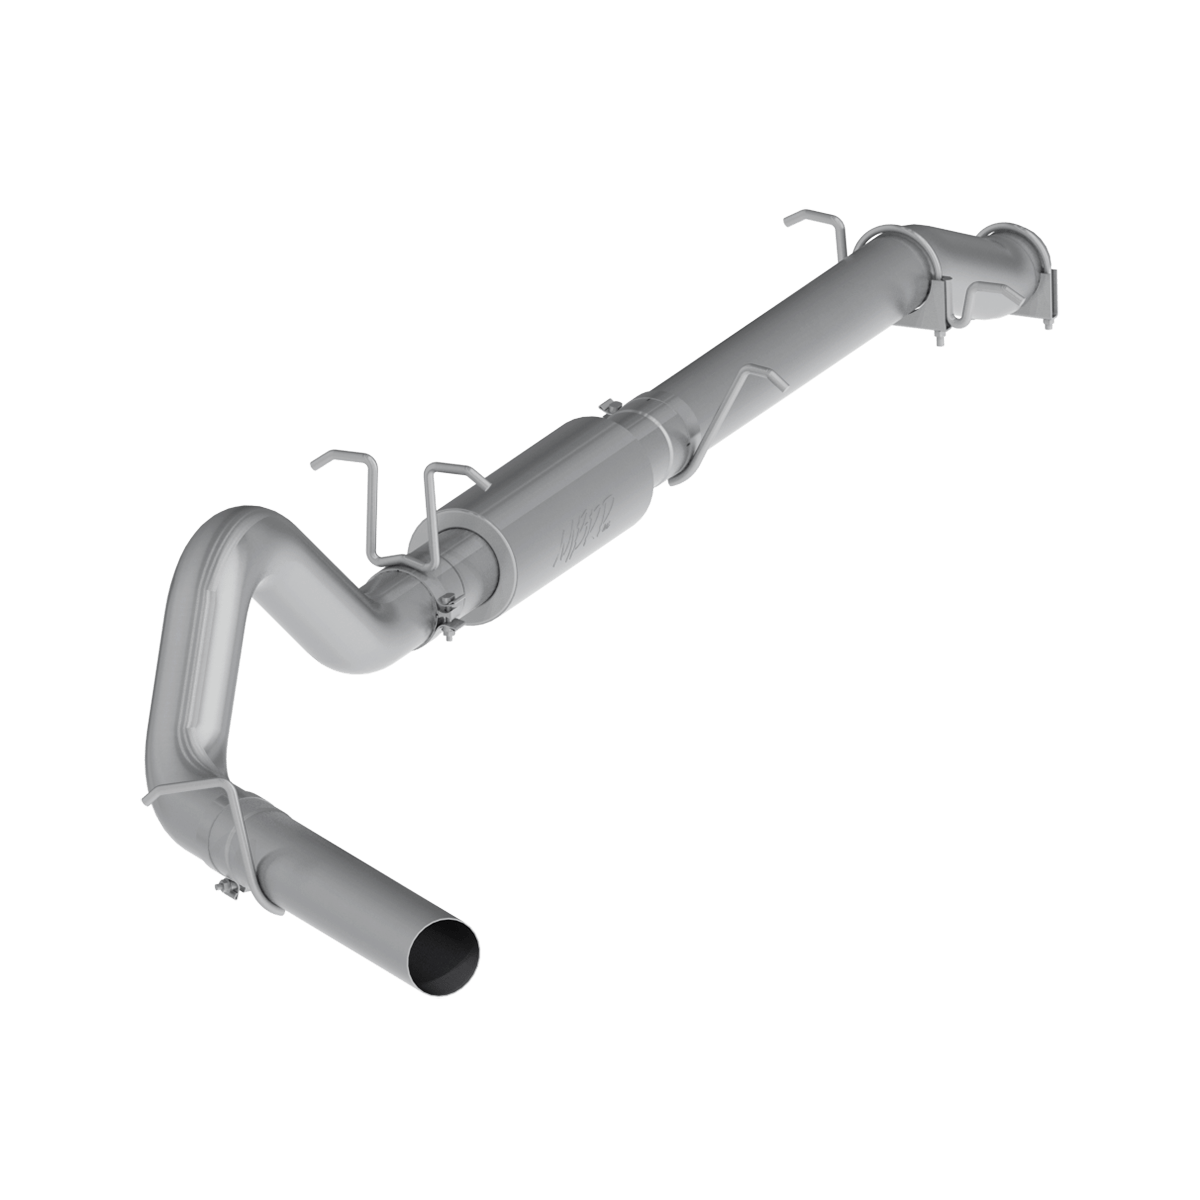 mbrp 4 inch cat back exhaust system single side stock cat for 03 07 ford f 250 350 6 0l extended cab crew cab s6208p